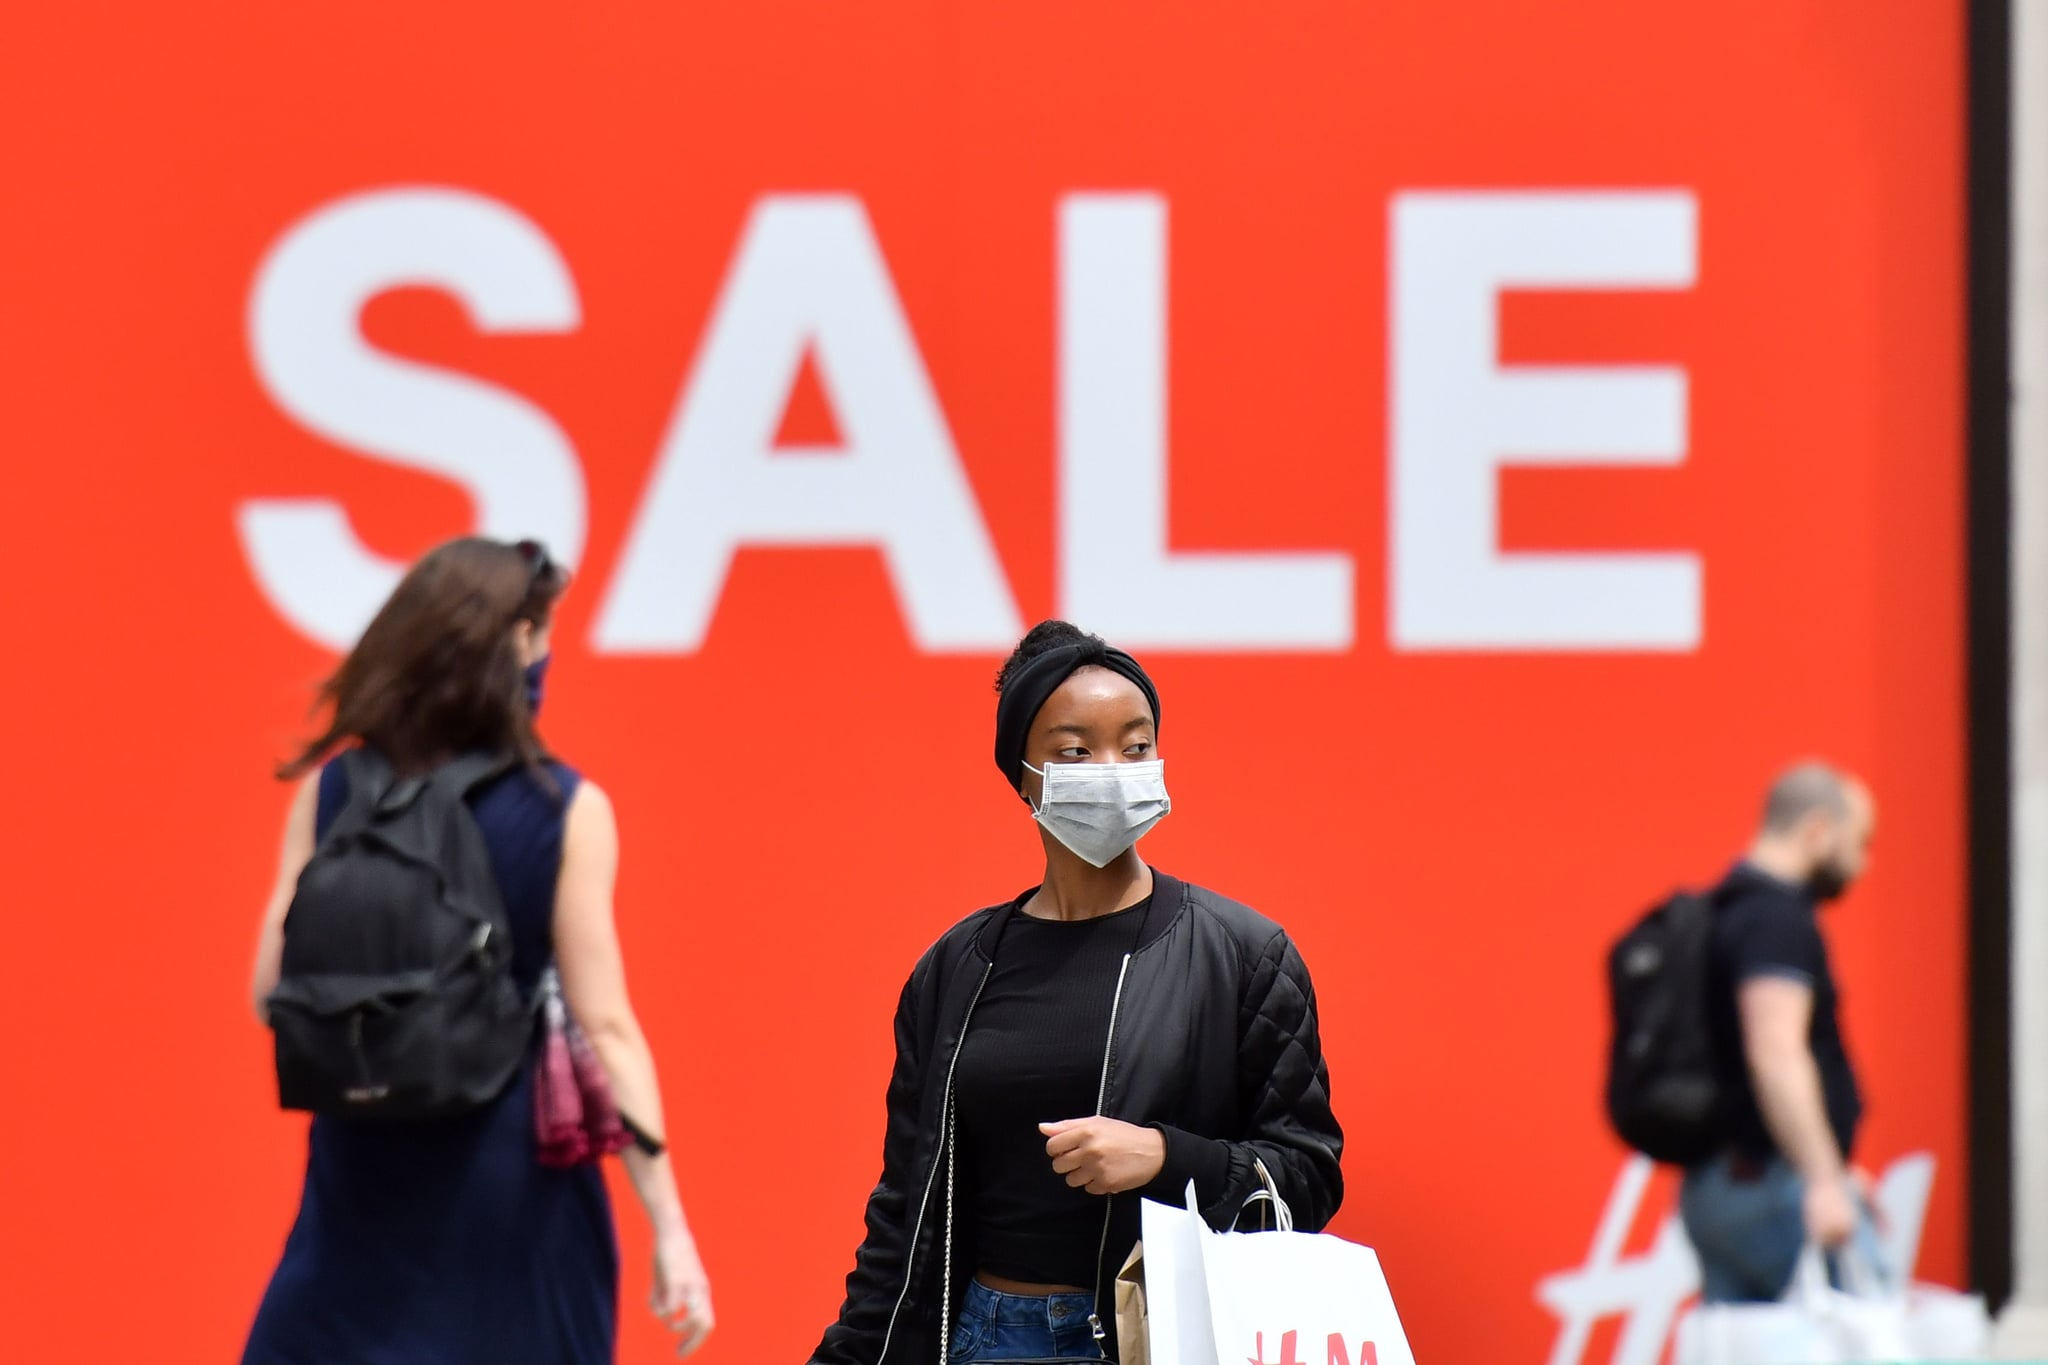 A shopper wears a mask as a precaution against the transmission of the novel coronavirus as she walks past a sale sign in shop window on Oxford Street in London on July 14, 2020. - Face masks will be compulsory in shops and supermarkets in England from next week, the government said on July 14, in a U-turn on previous policy. (Photo by JUSTIN TALLIS / AFP) (Photo by JUSTIN TALLIS/AFP via Getty Images)